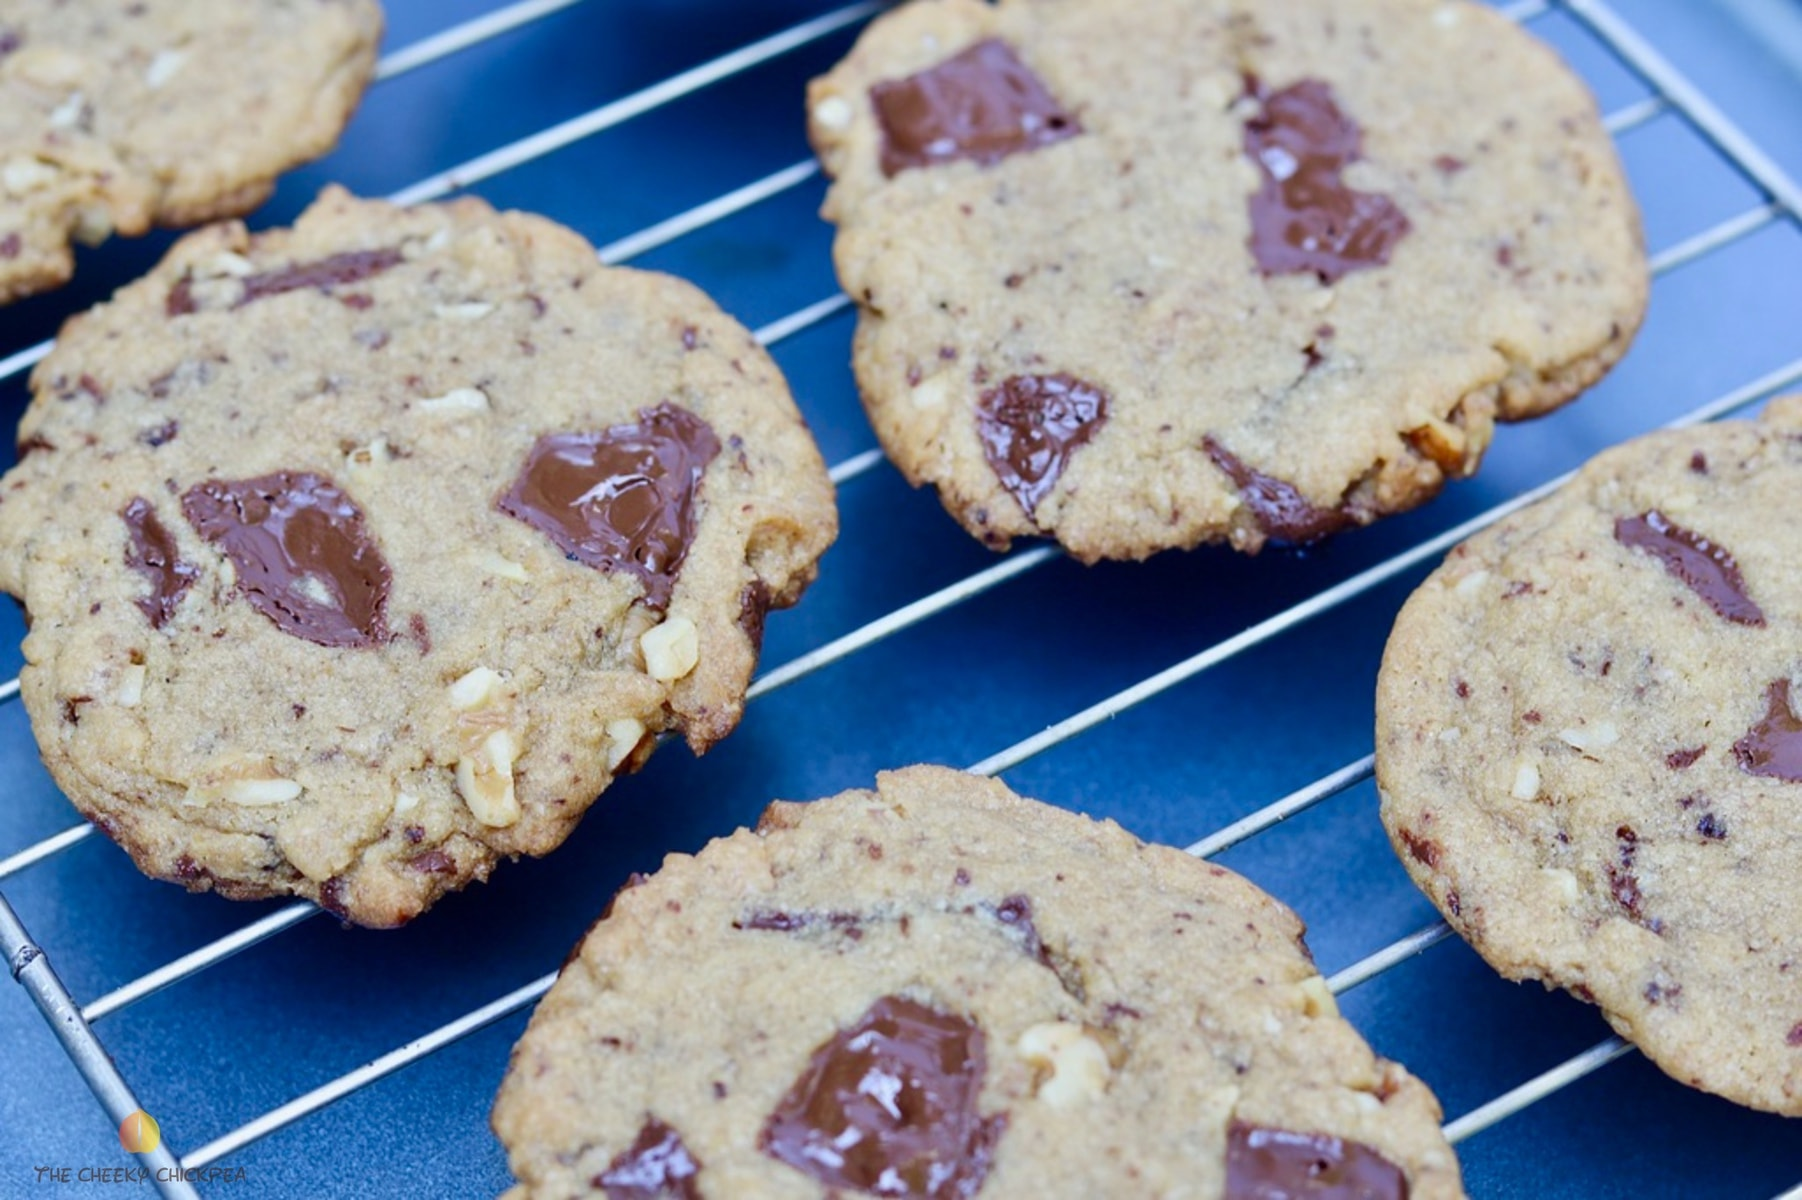 four vegan chocolate chip cookies on a cooling rack